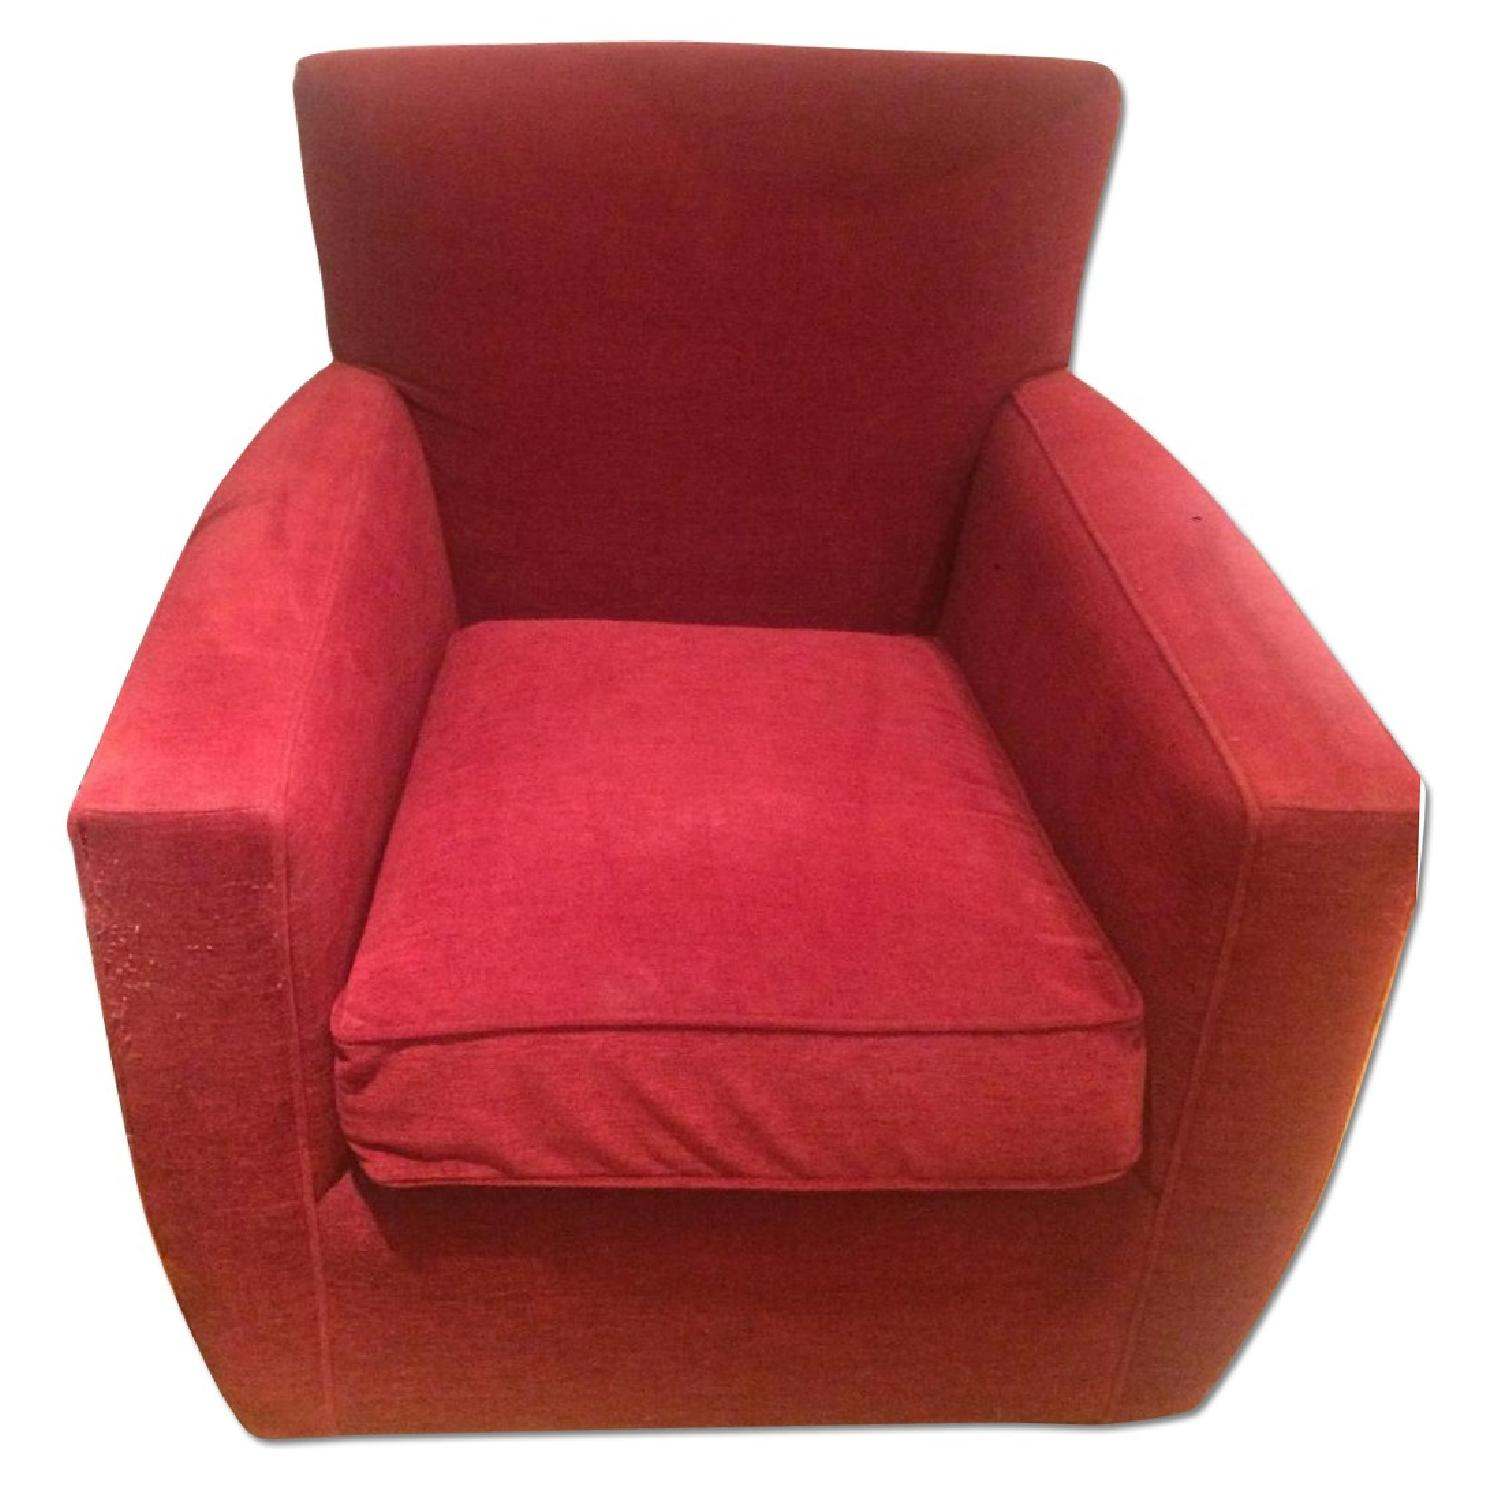 Picture of: Crate Barrel Red Swivel Chairs Pair Aptdeco